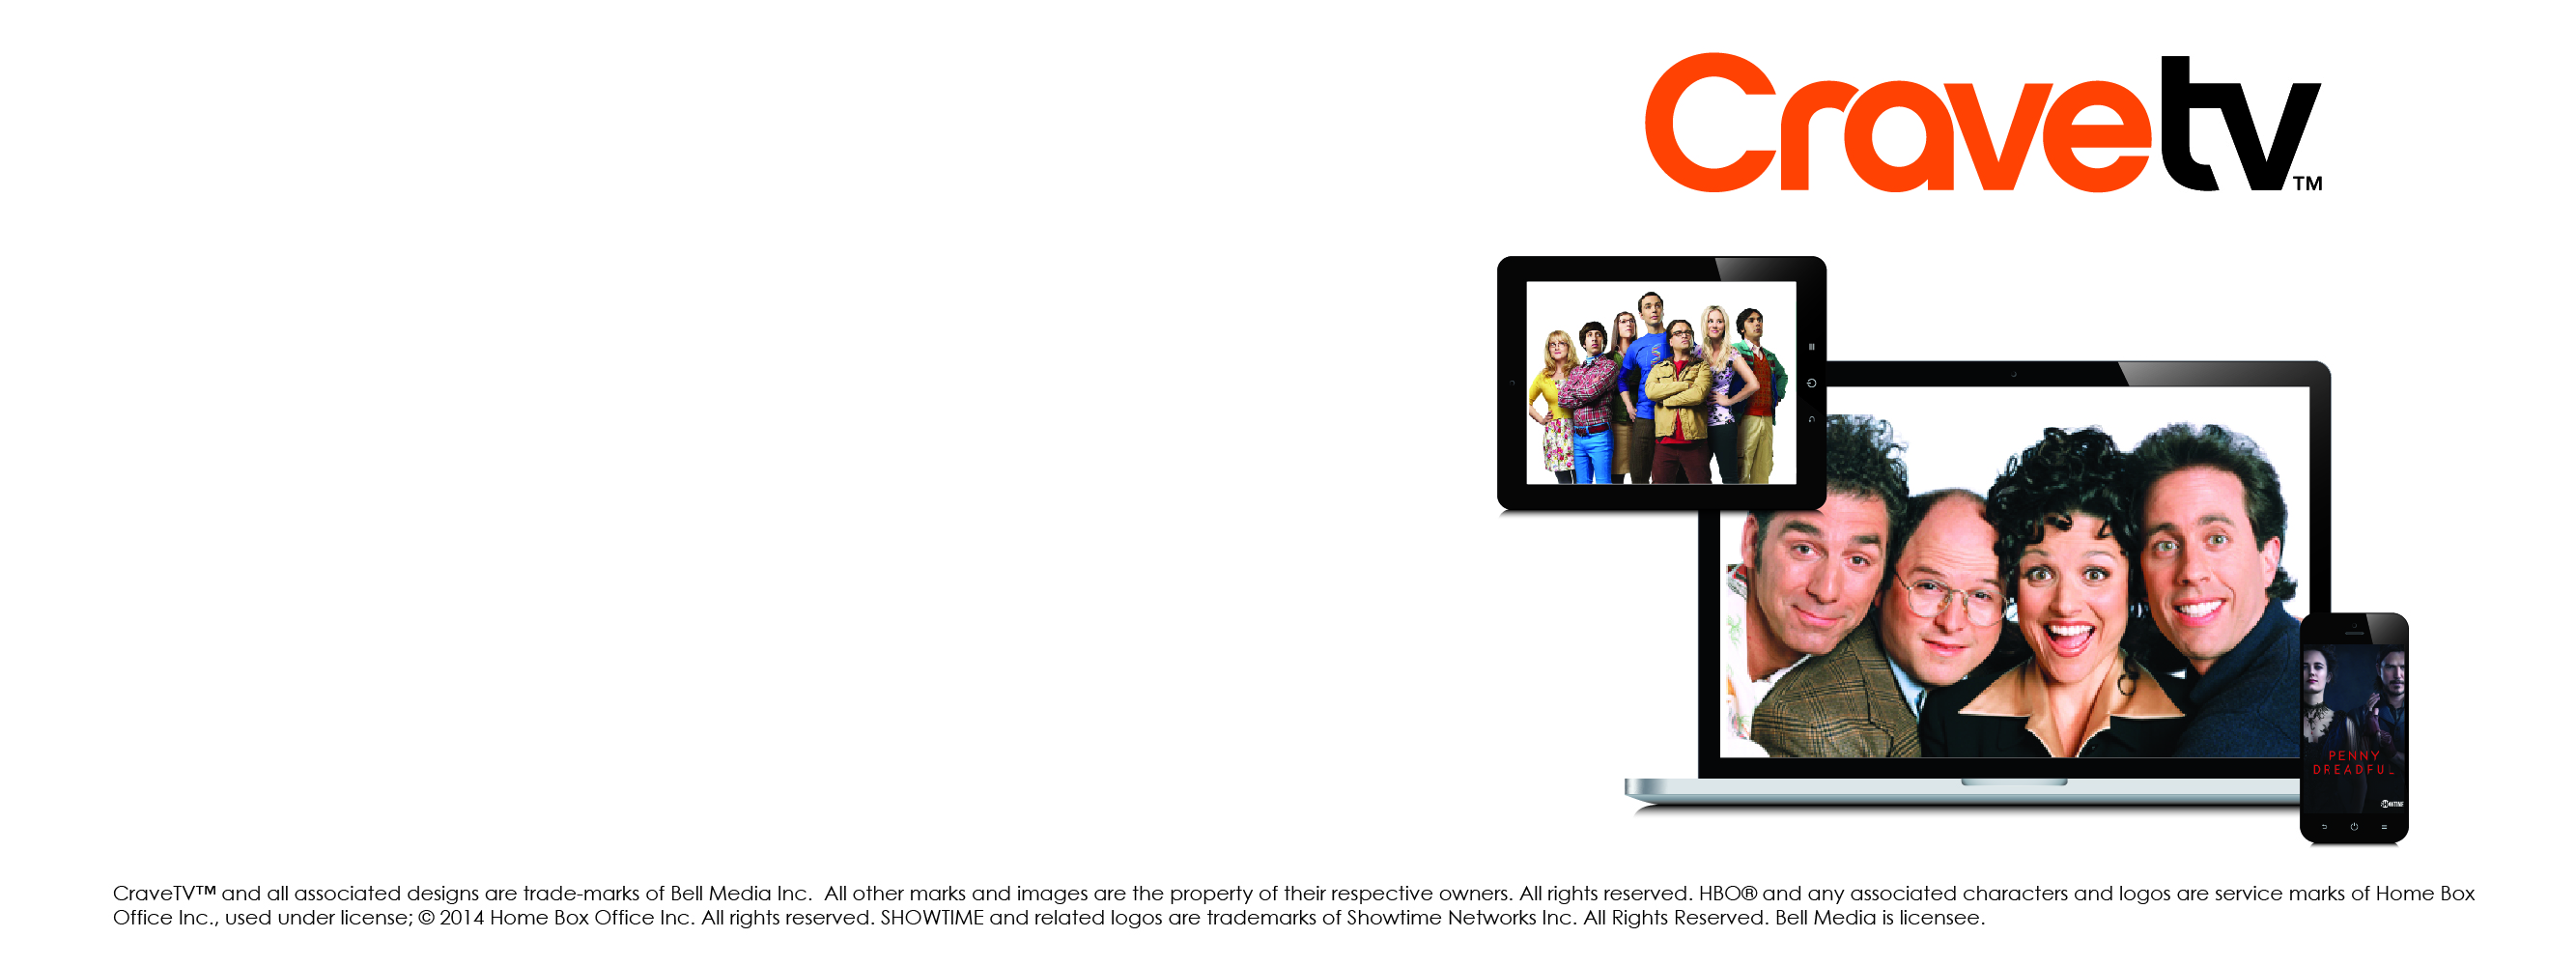 Cable Cable is now  offering CraveTV.